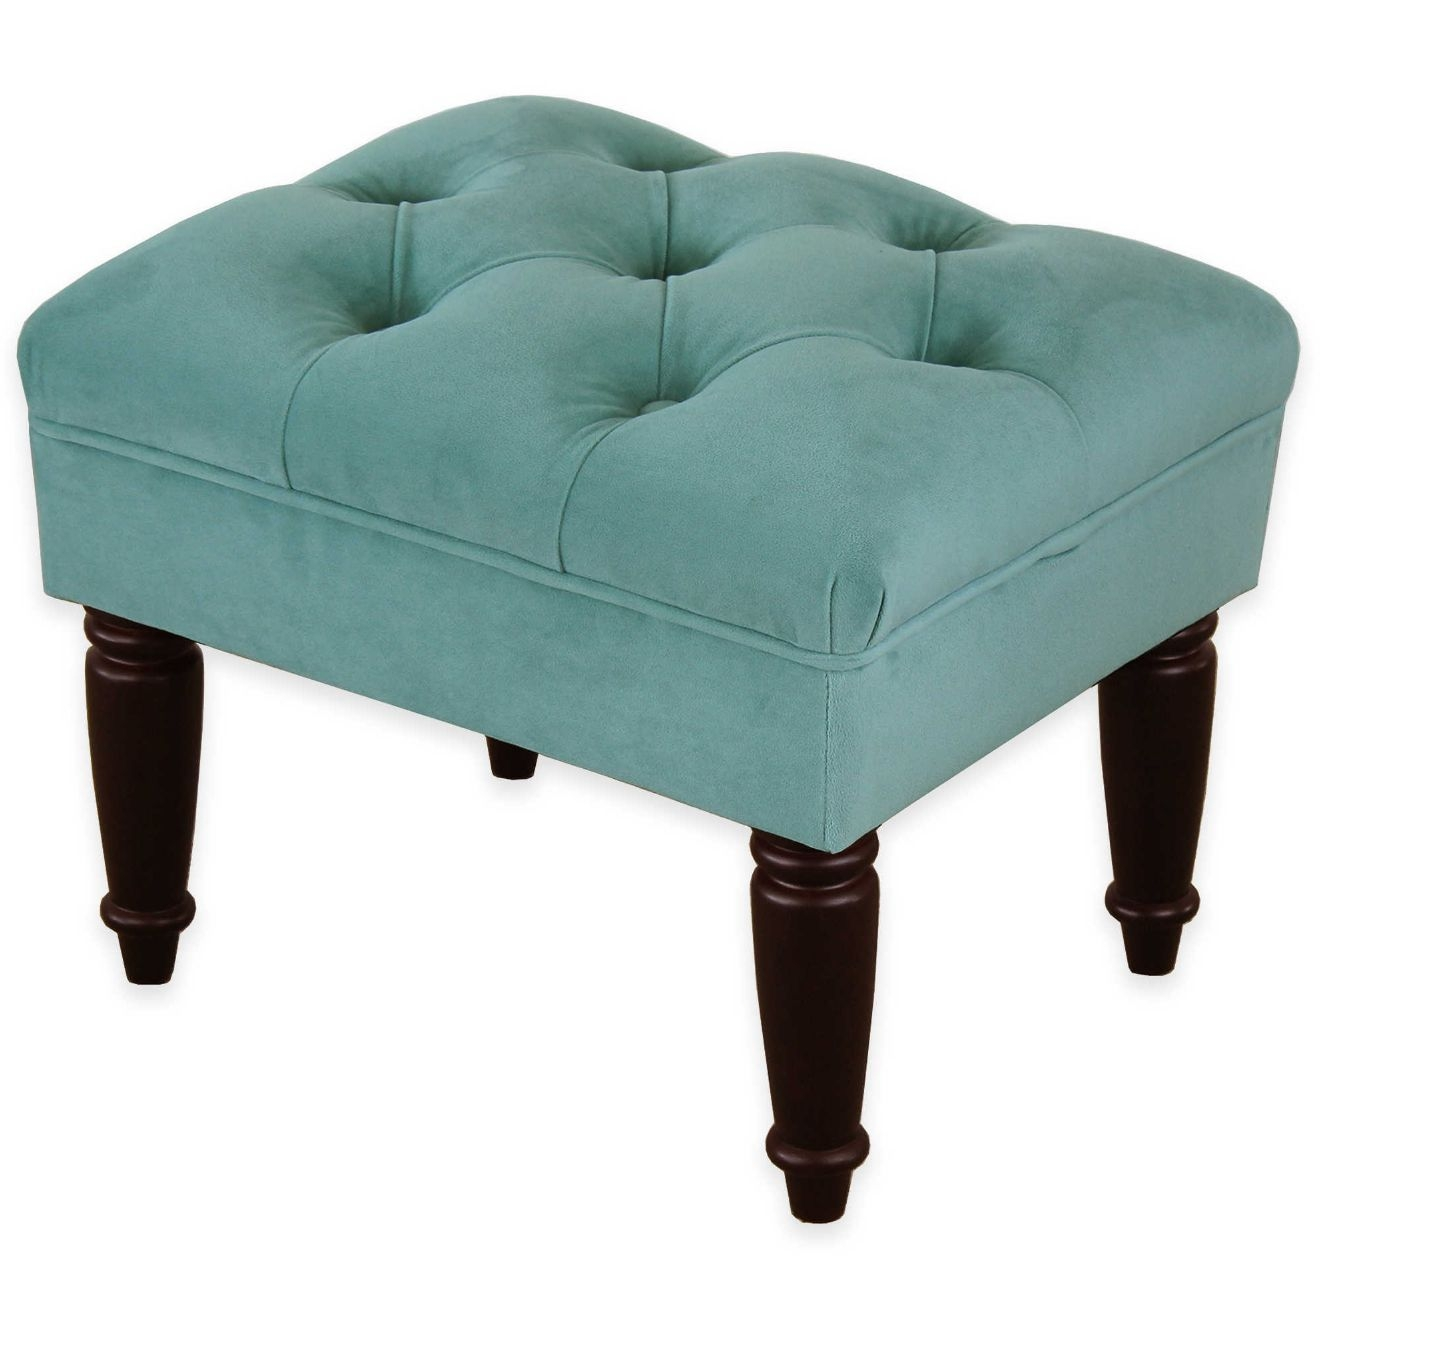 Home Tufted Upholstered Velvet Fabric Bench Foot Stool Seat Regarding Velvet Footstool (Image 11 of 15)